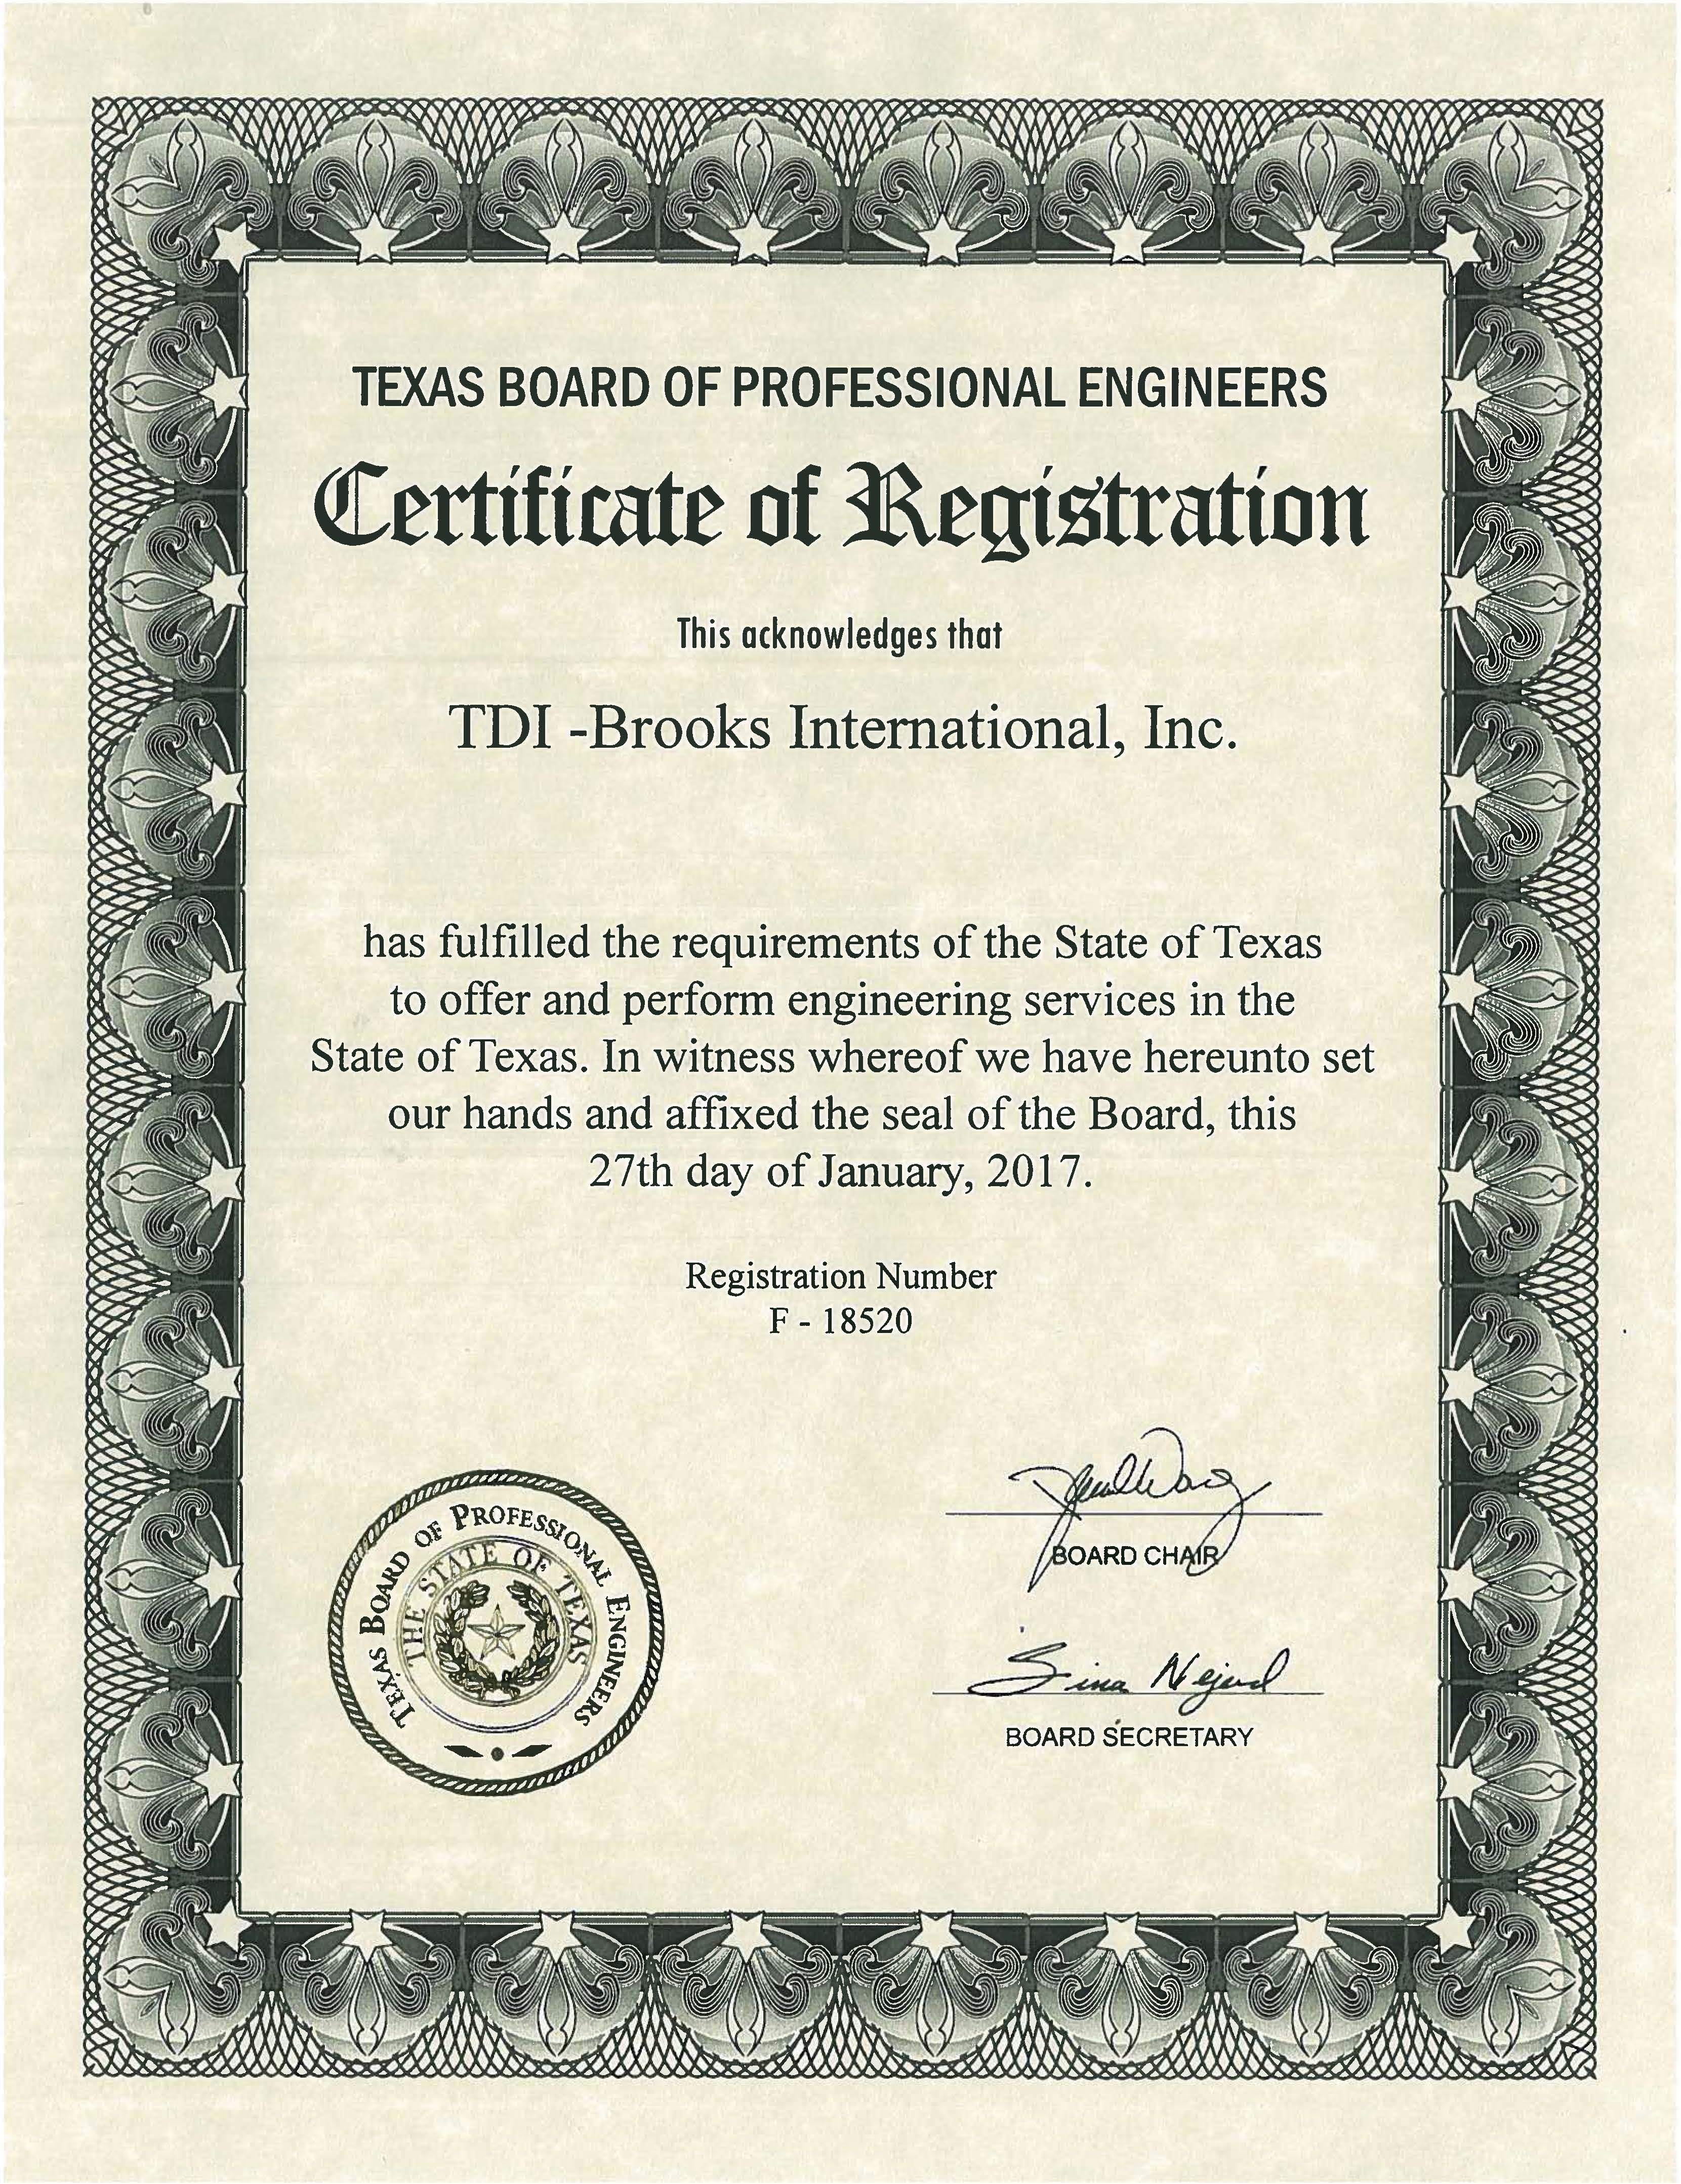 Tdi brooks international acquires engineering firm certification recent posts 1betcityfo Gallery